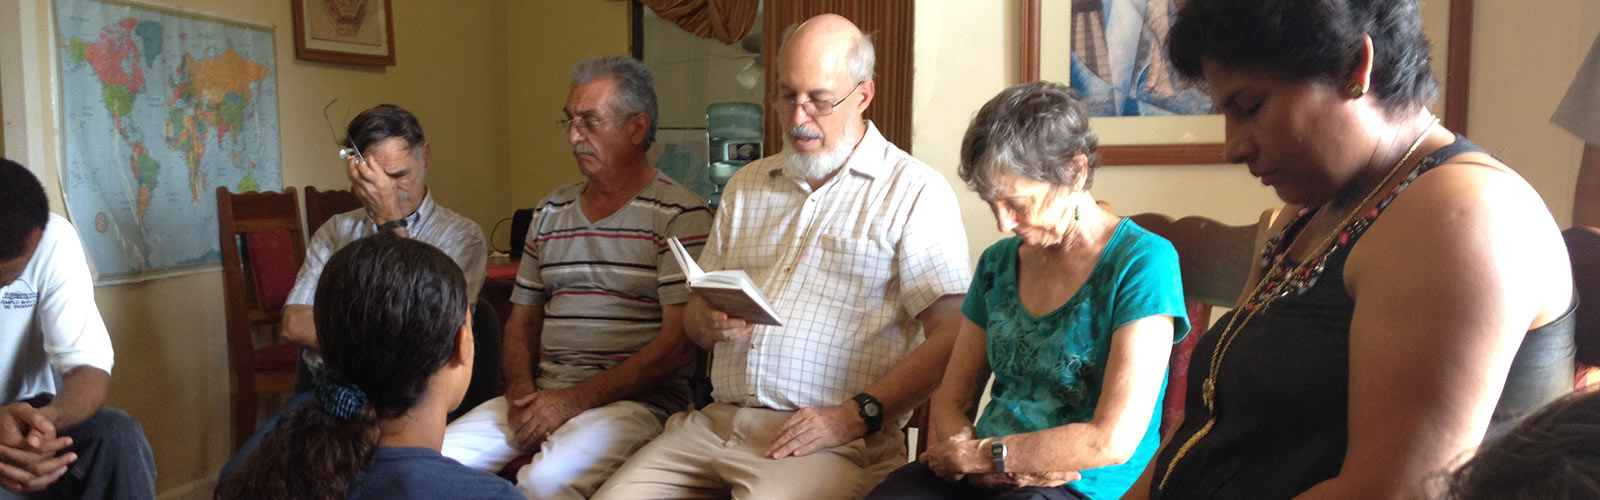 Belize Baha'i Devotions